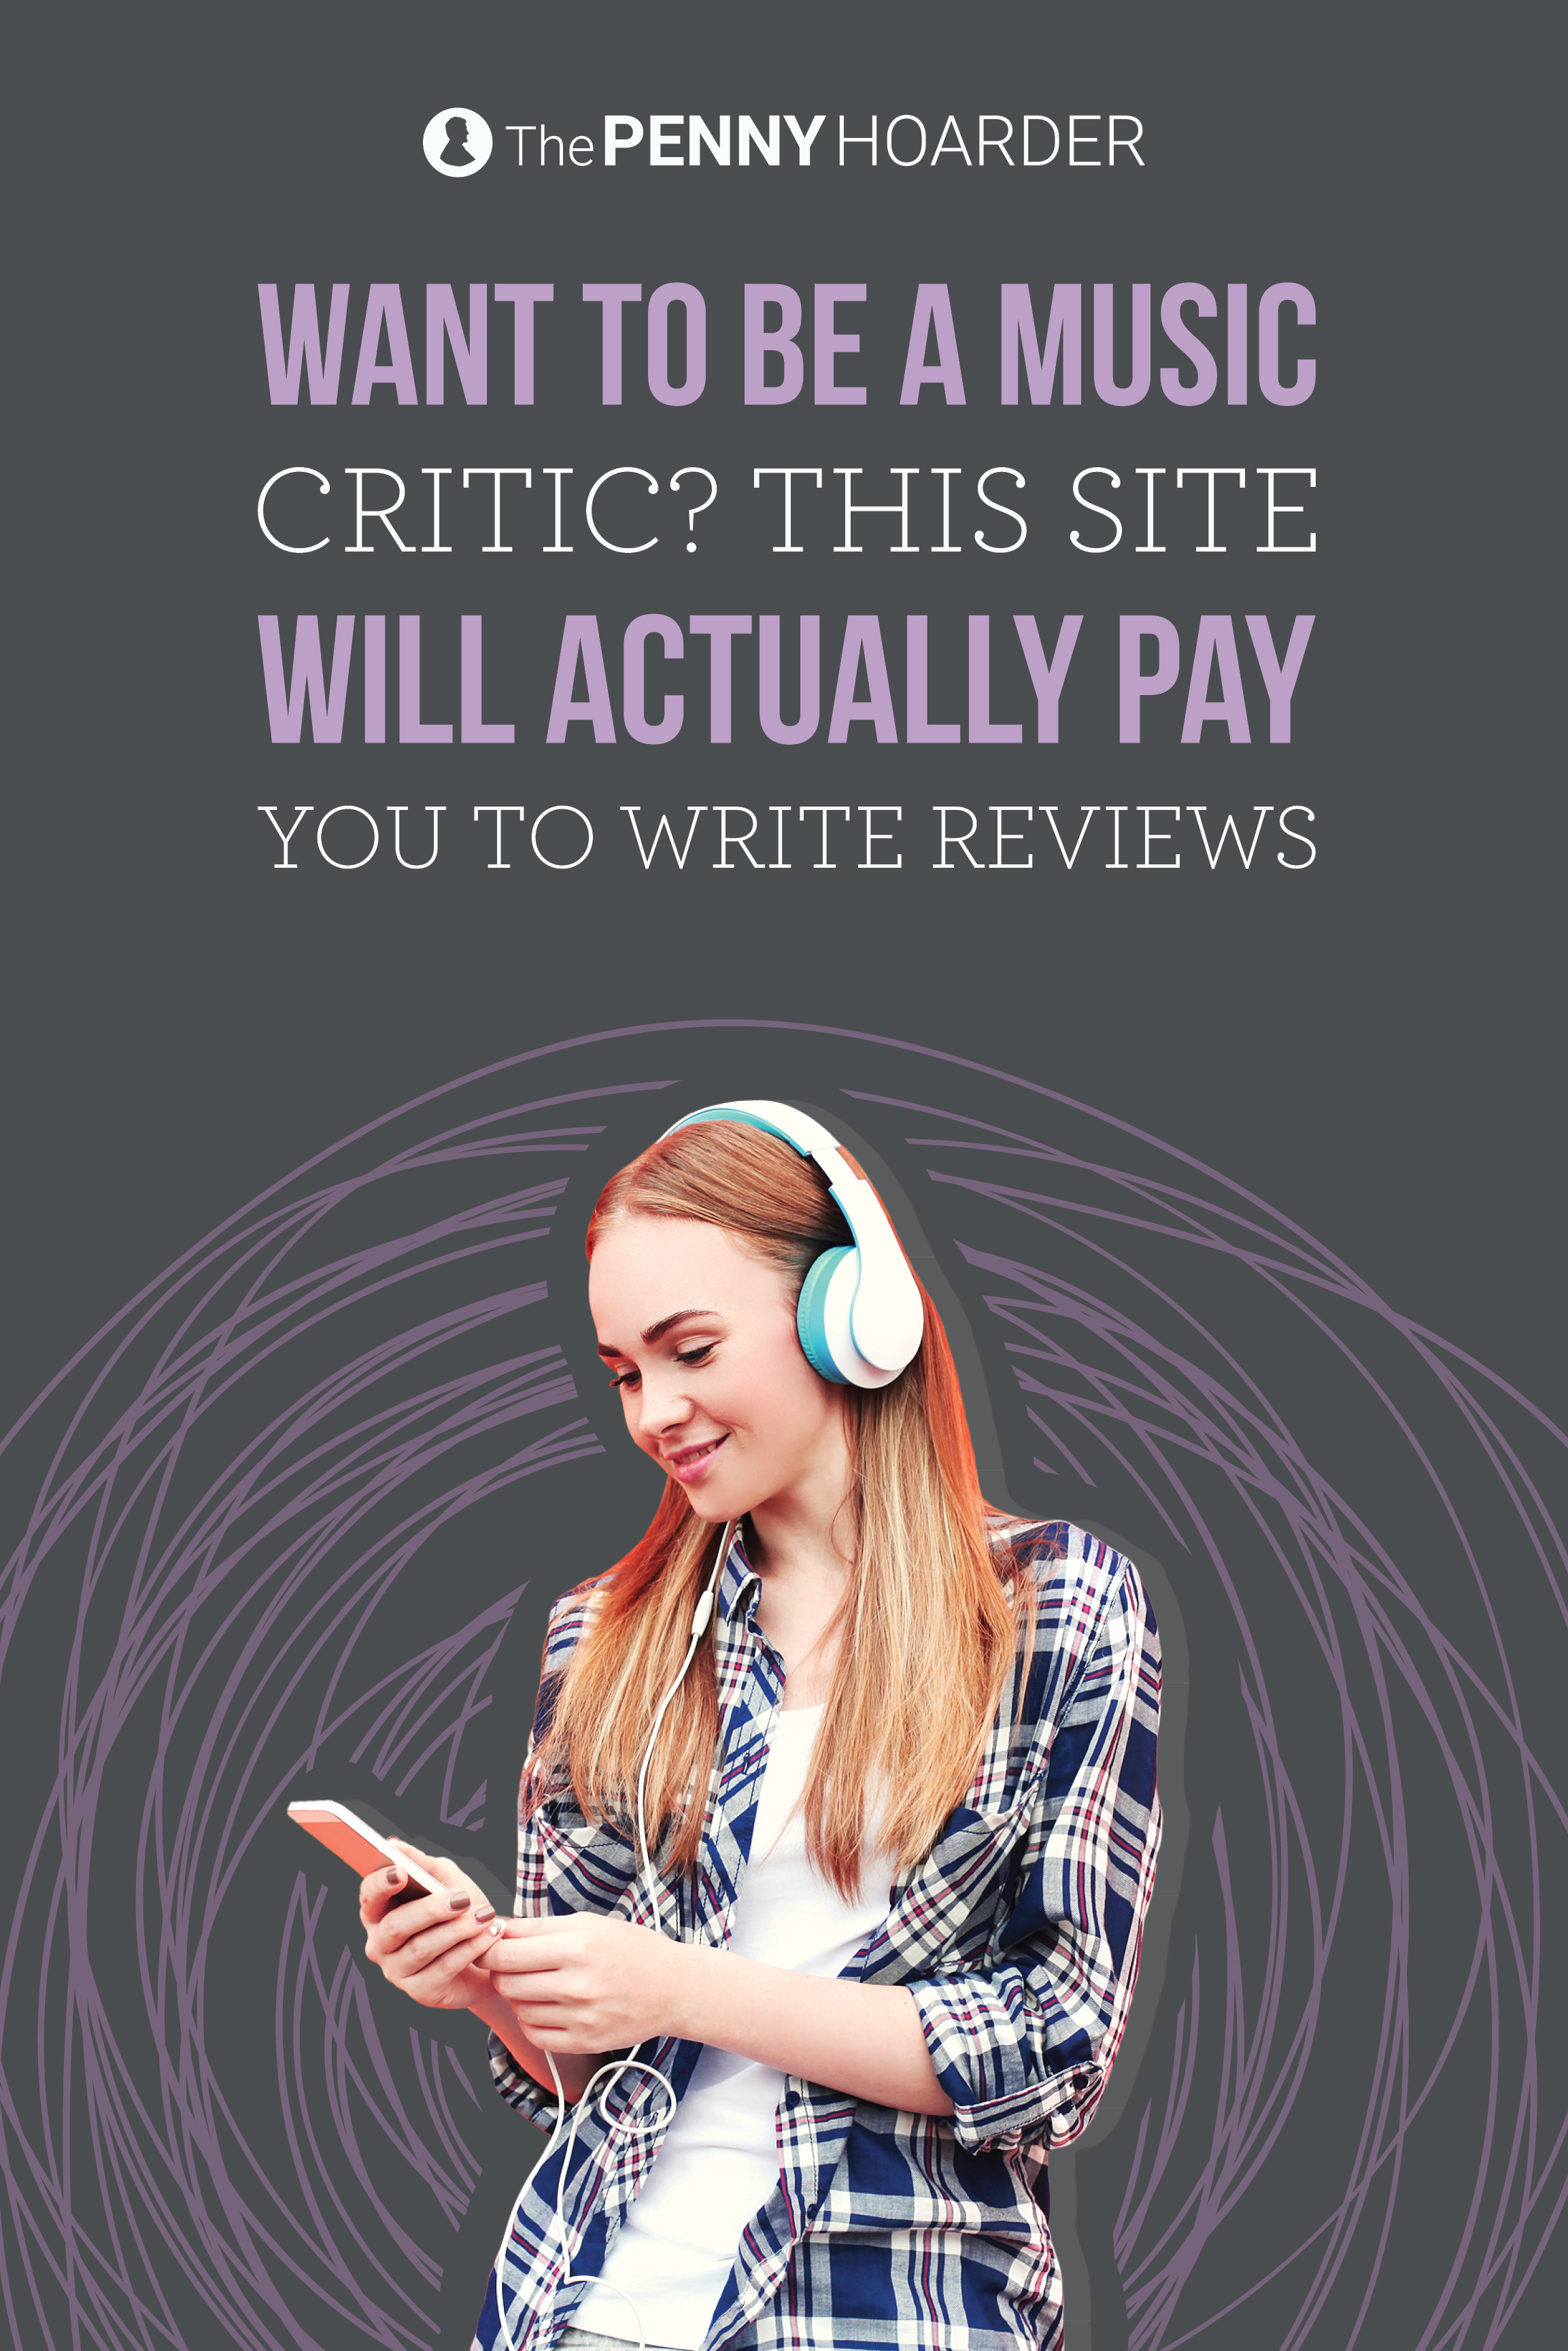 Want to Be a Music Critic? This Site Will Actually Pay You